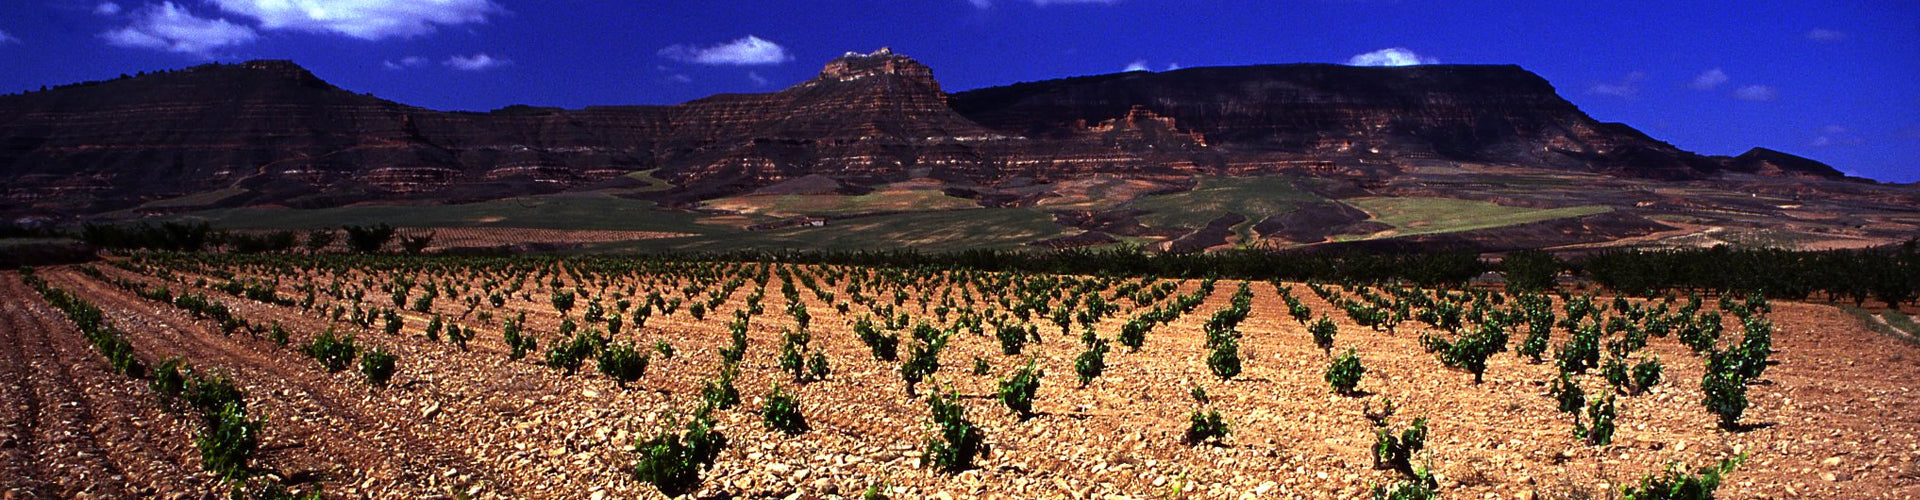 Bodegas San Alejandro Vineyards in the Calatayud region of Northern Spain